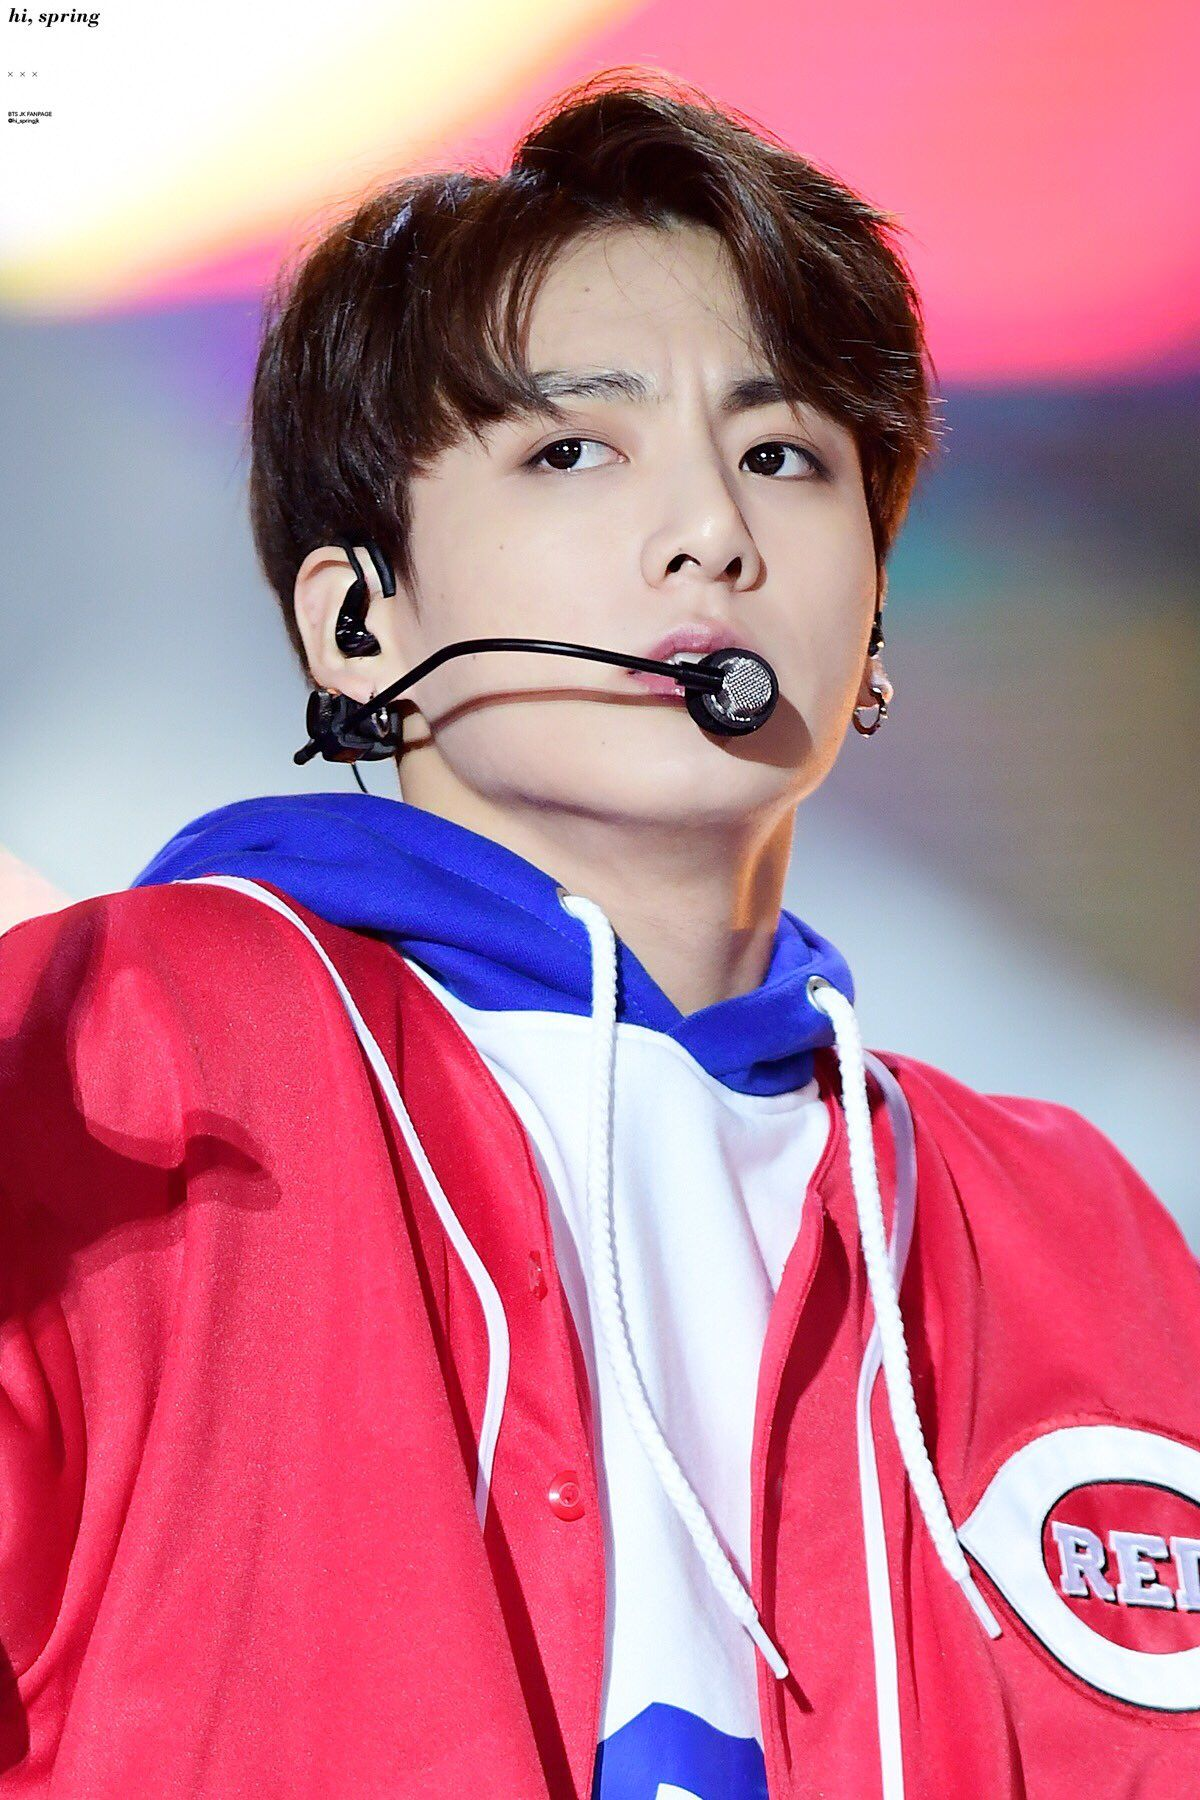 Jungkook frown bts pinterest daejeon and bts